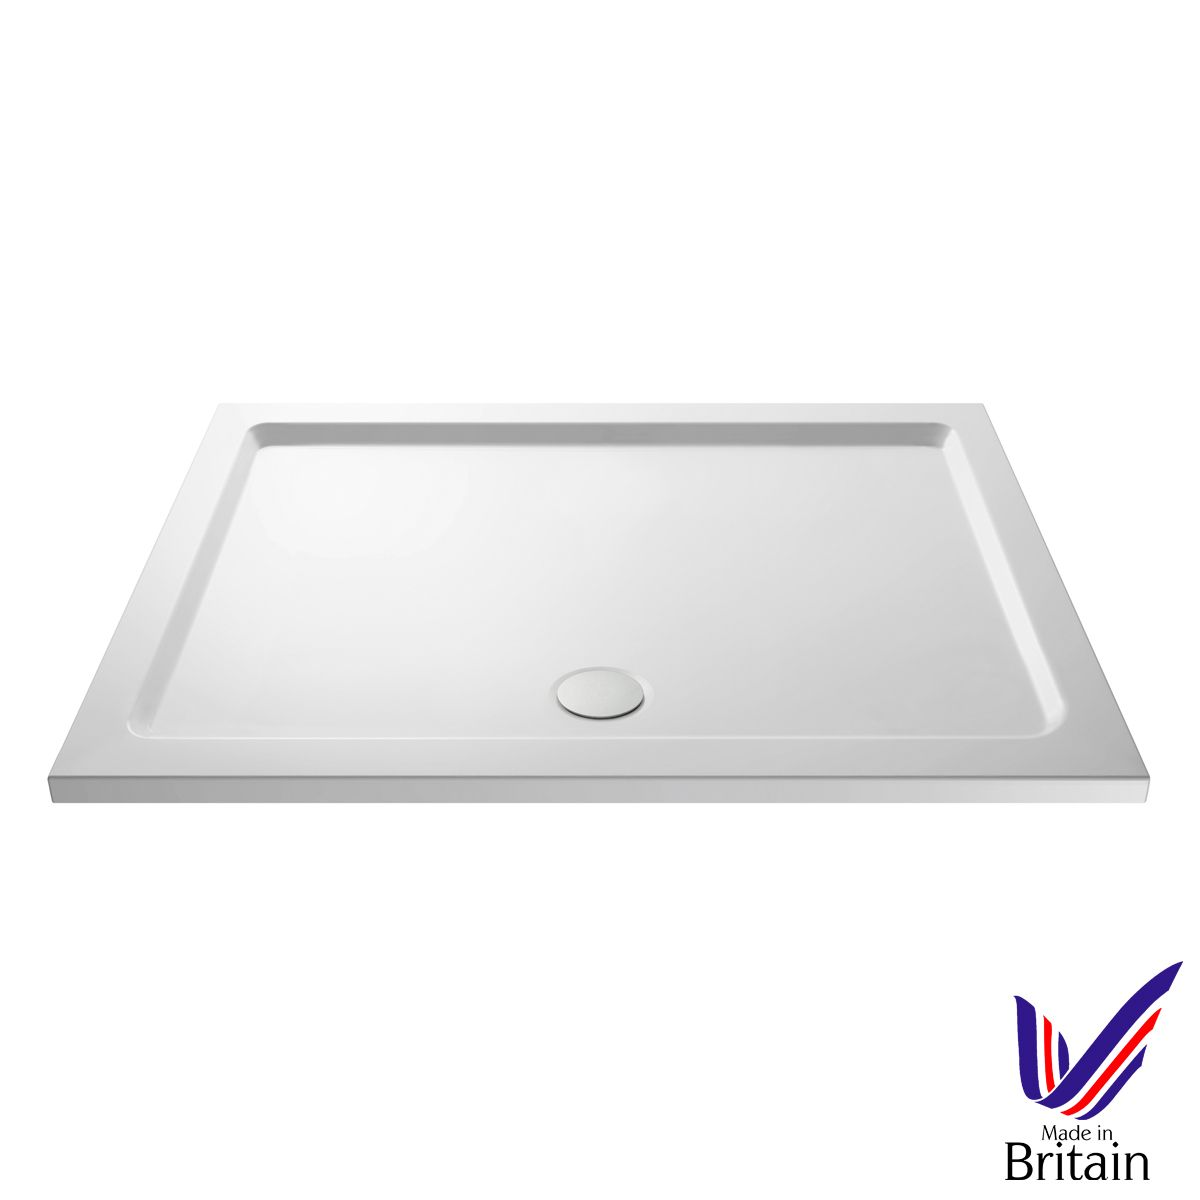 1700 x 700 Shower Tray Rectangular Low Profile by Pearlstone